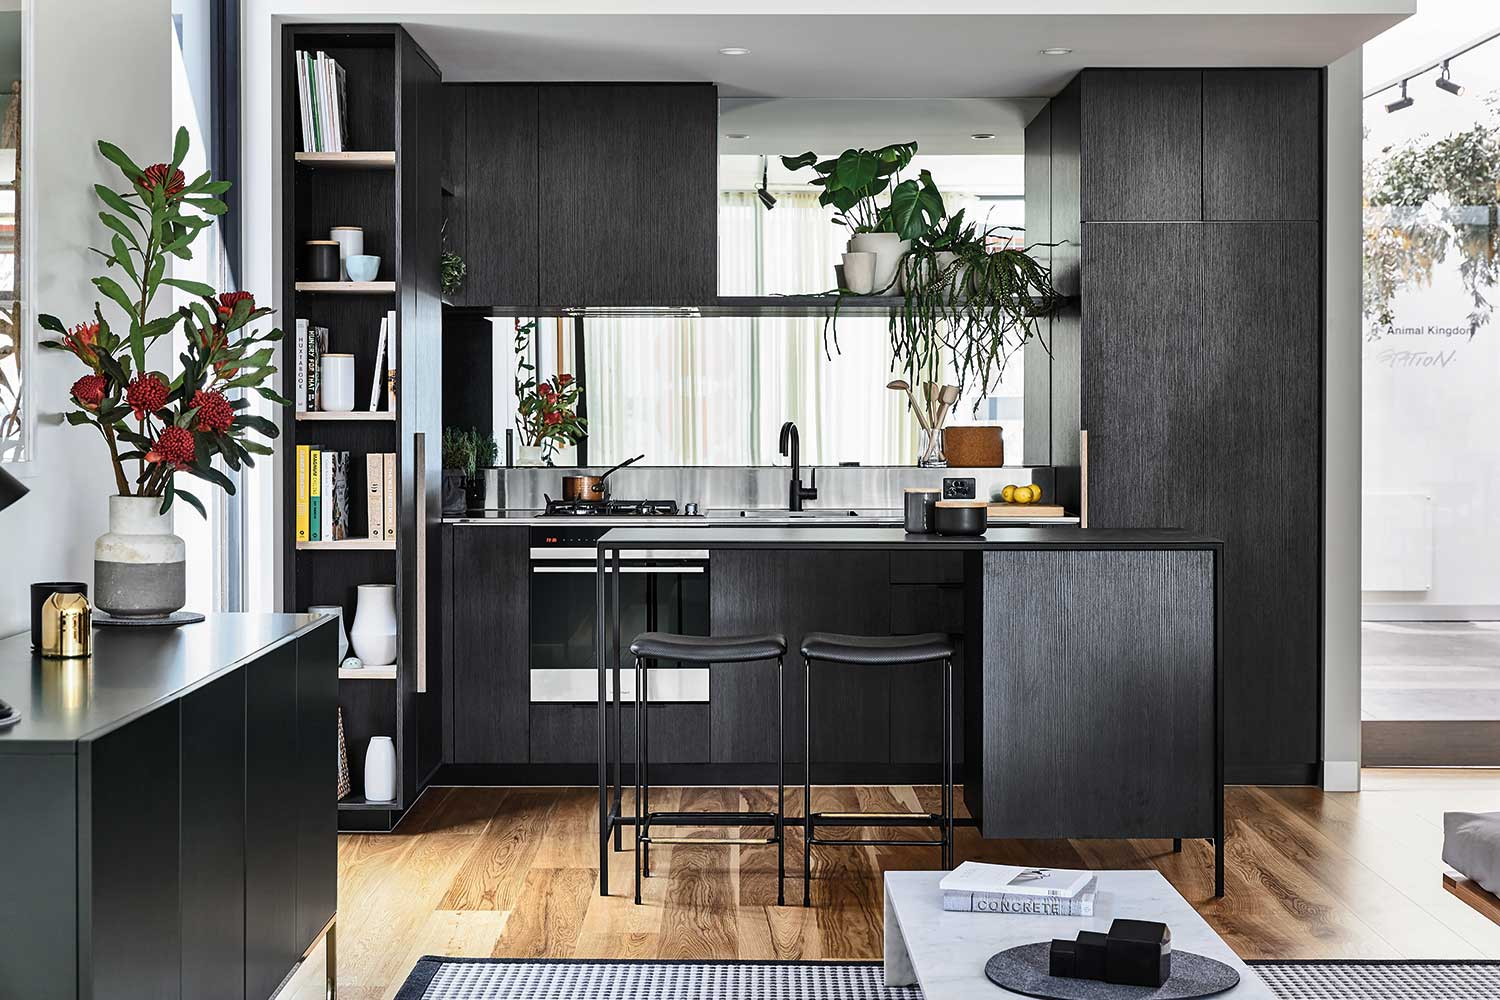 These Are The Biggest Kitchen Design Trends For 2019 Home